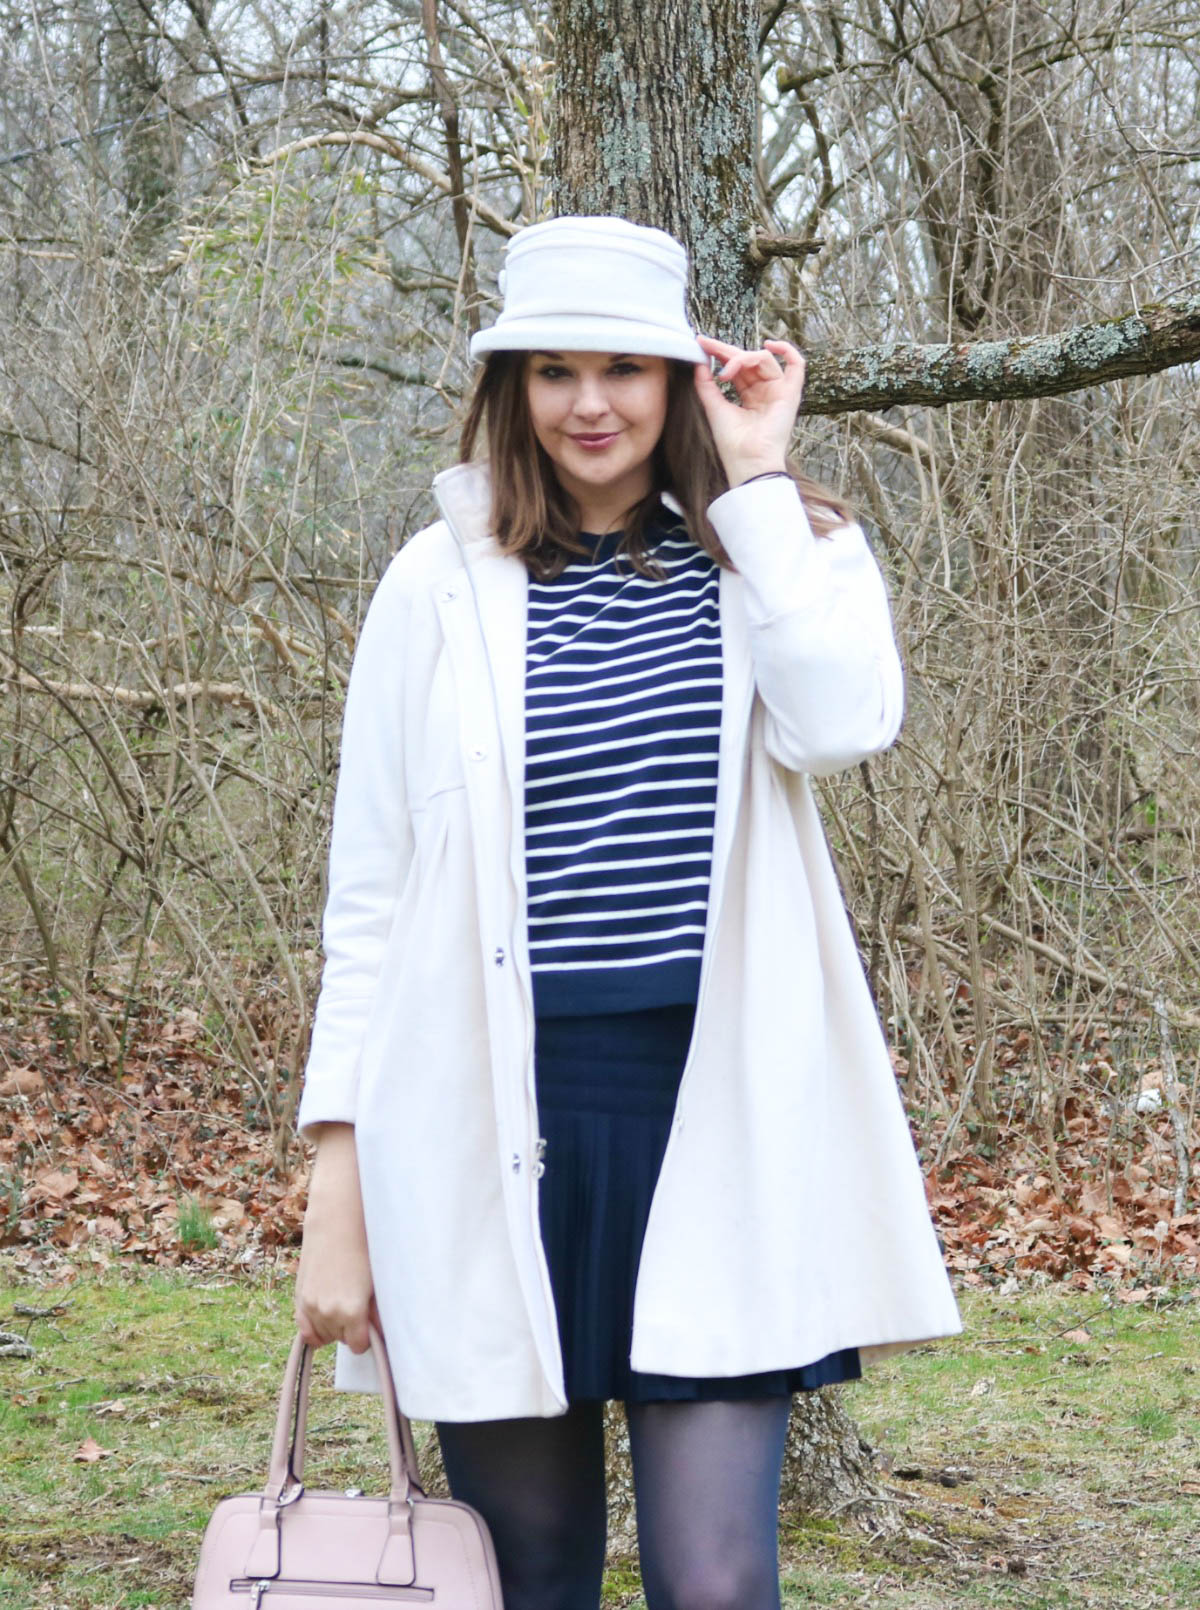 Early Spring Style Ideas I Winter Whites Over Navy Stripes with Blush Pink Handbag #OOTD #SpringStyle